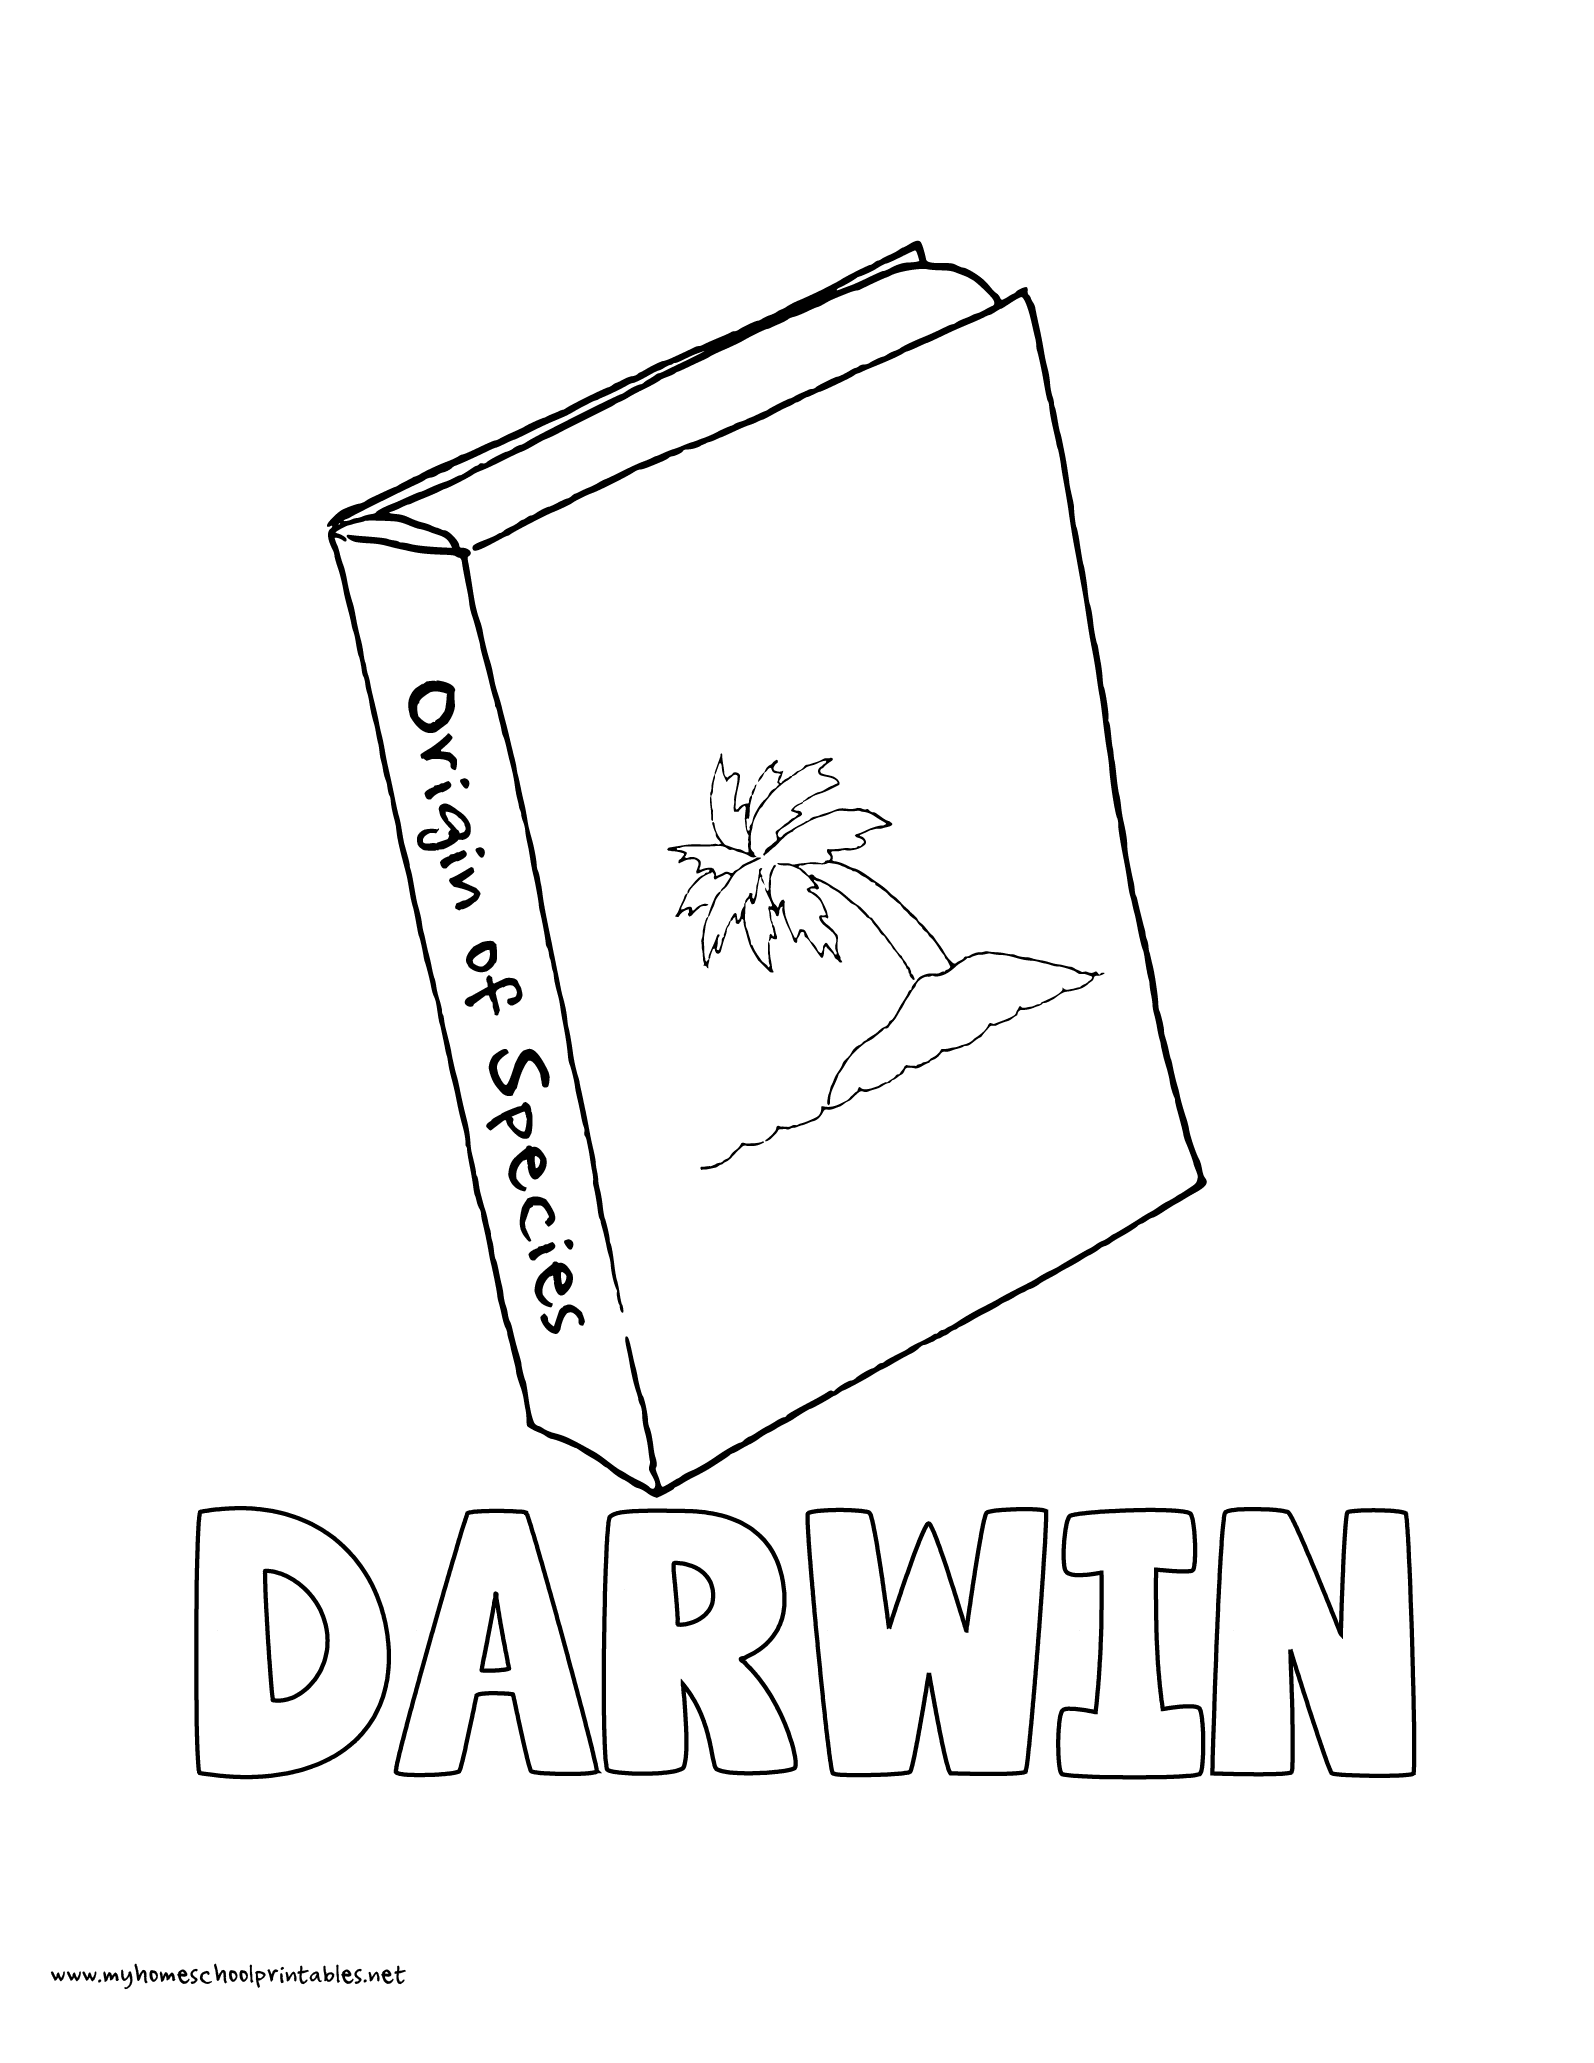 World History Coloring Pages Printables Charles Darwin Origin of Species